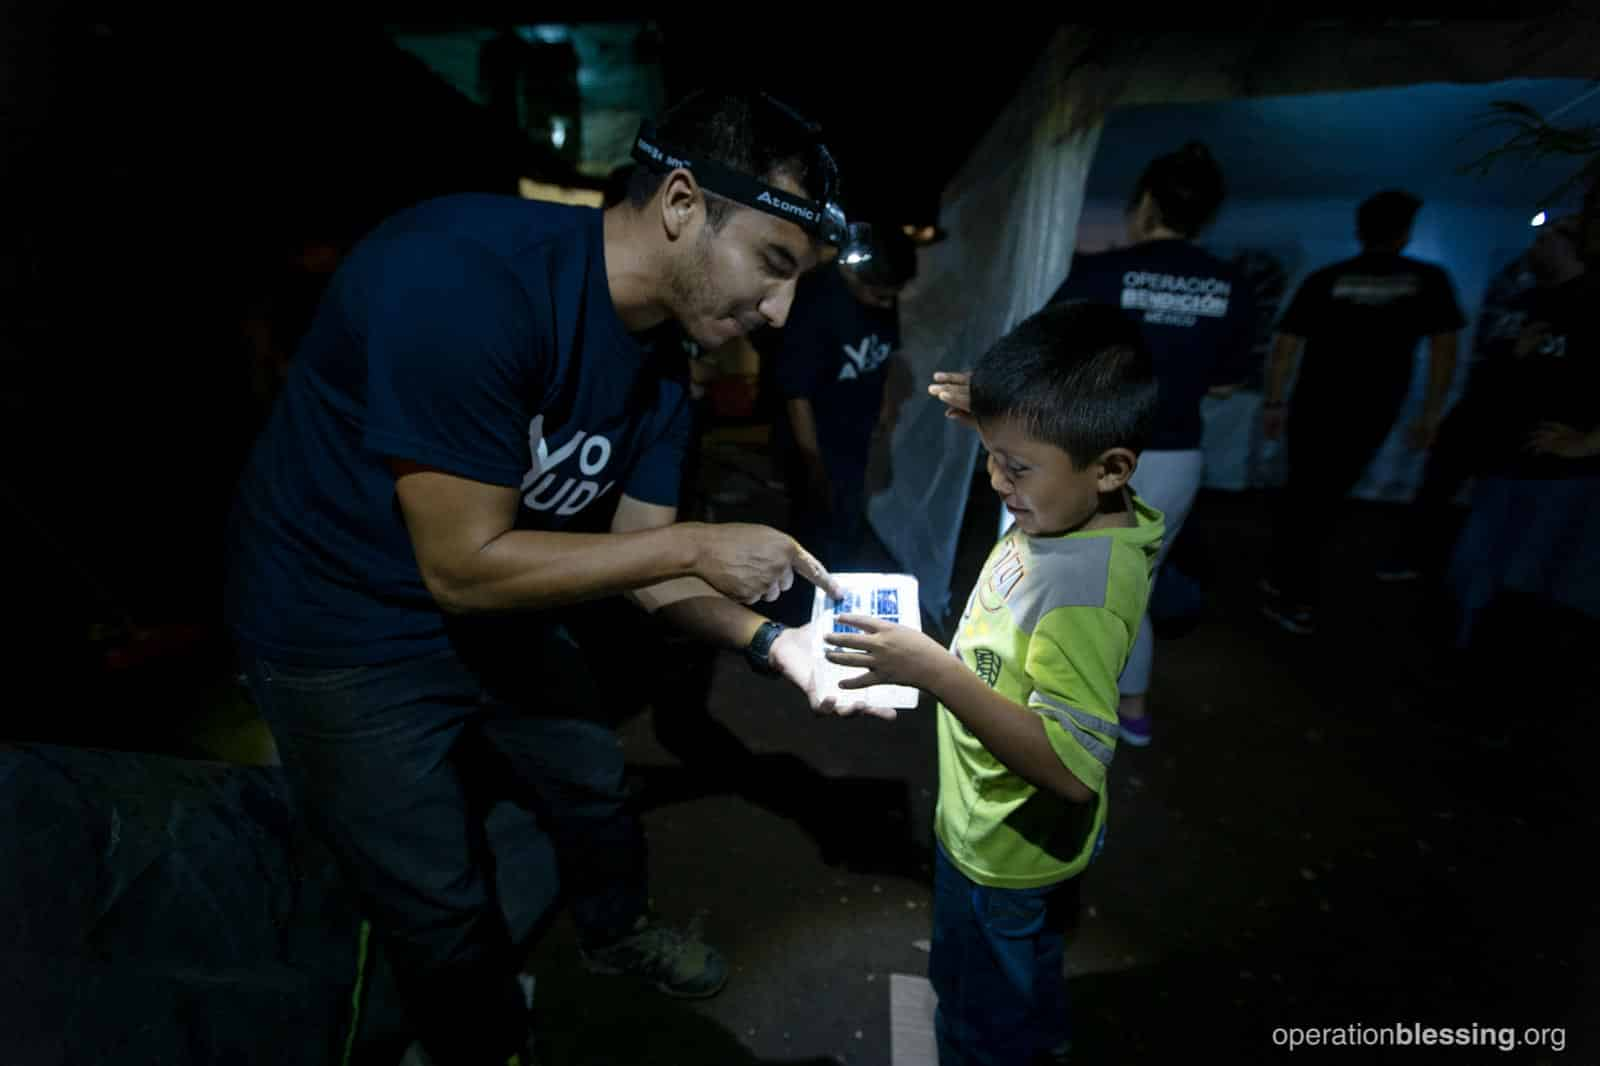 An OB Mexico team member presents Uziel with a solar lantern.